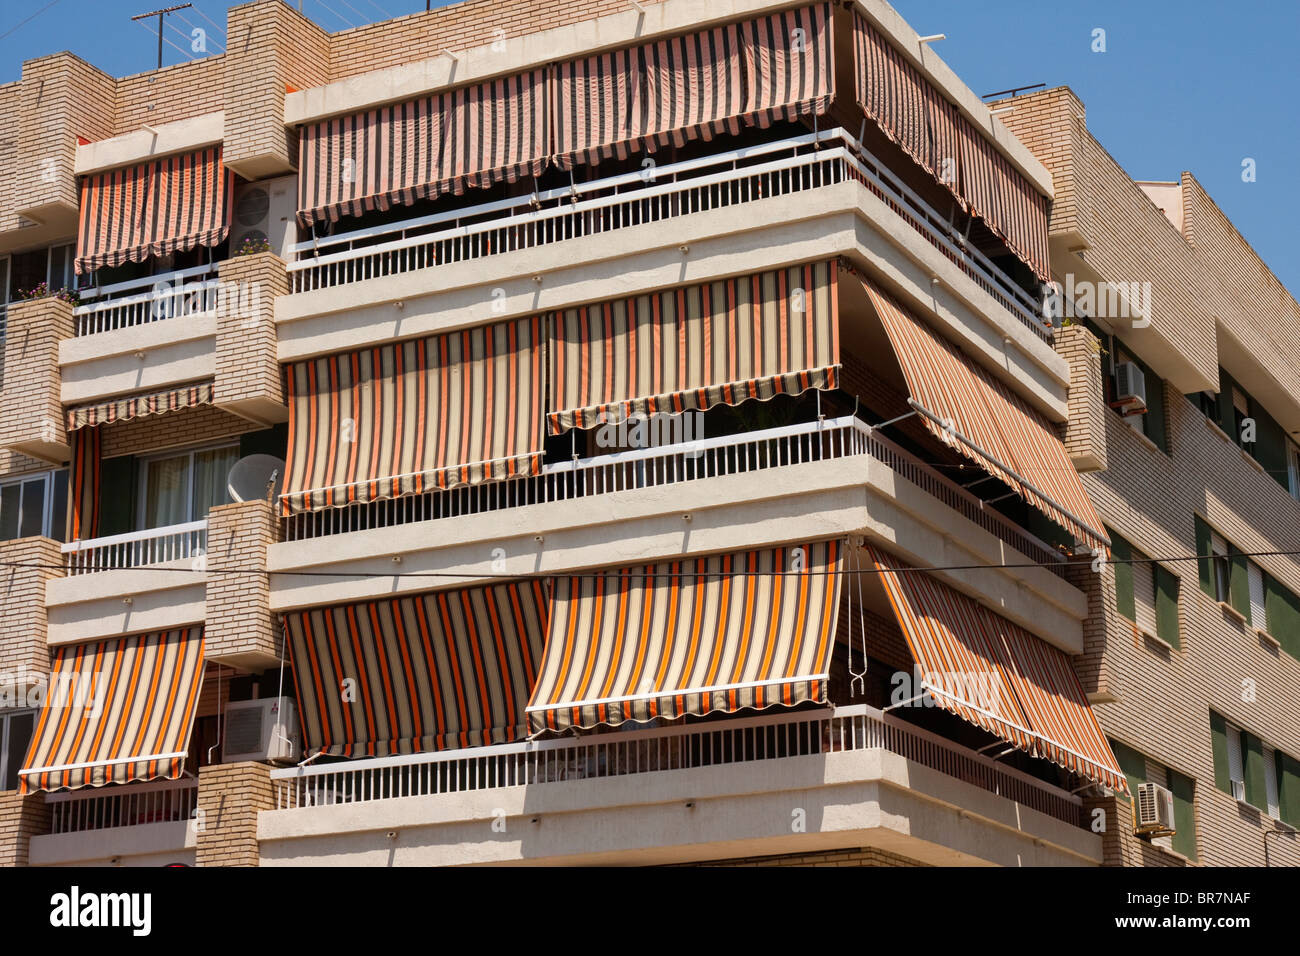 Balconies covered by sun shades during the heat of the day